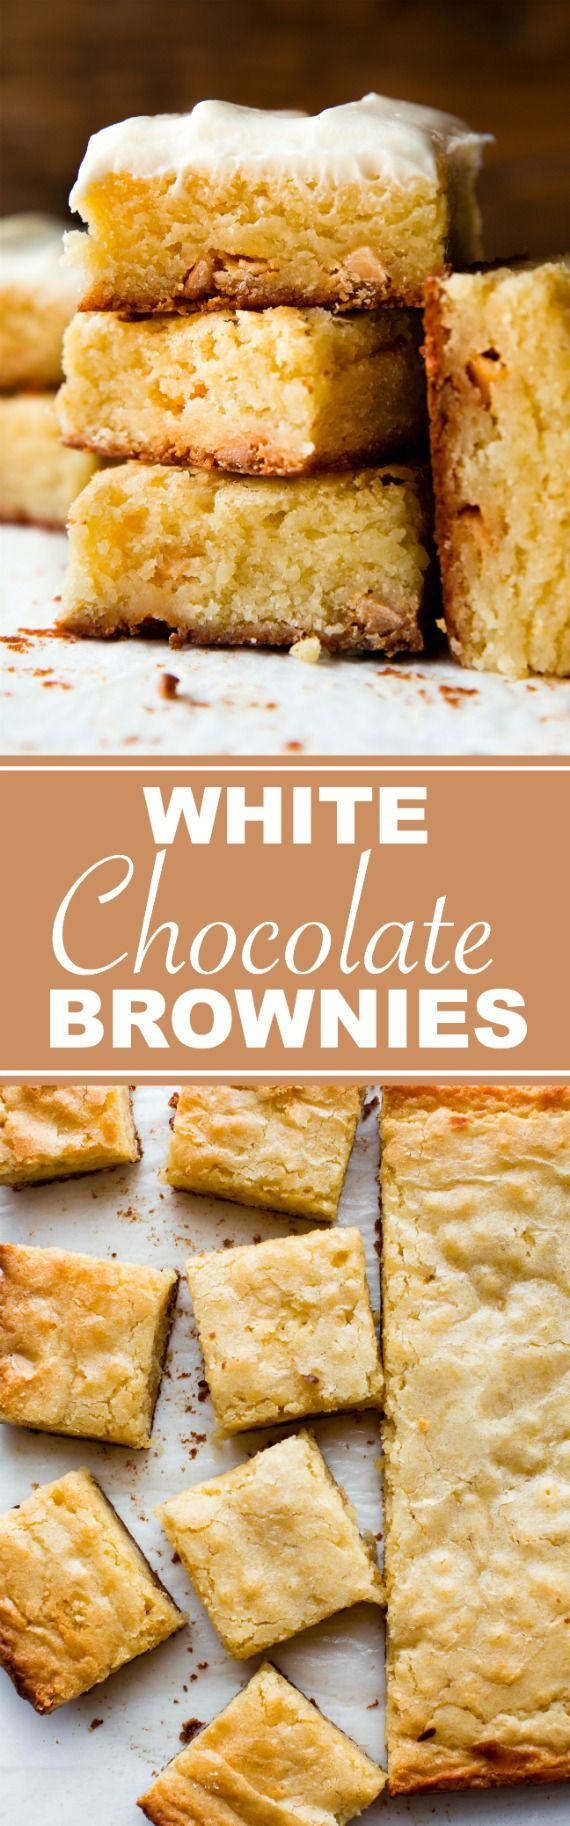 Best 20+ White chocolate brownies ideas on Pinterest | White ...